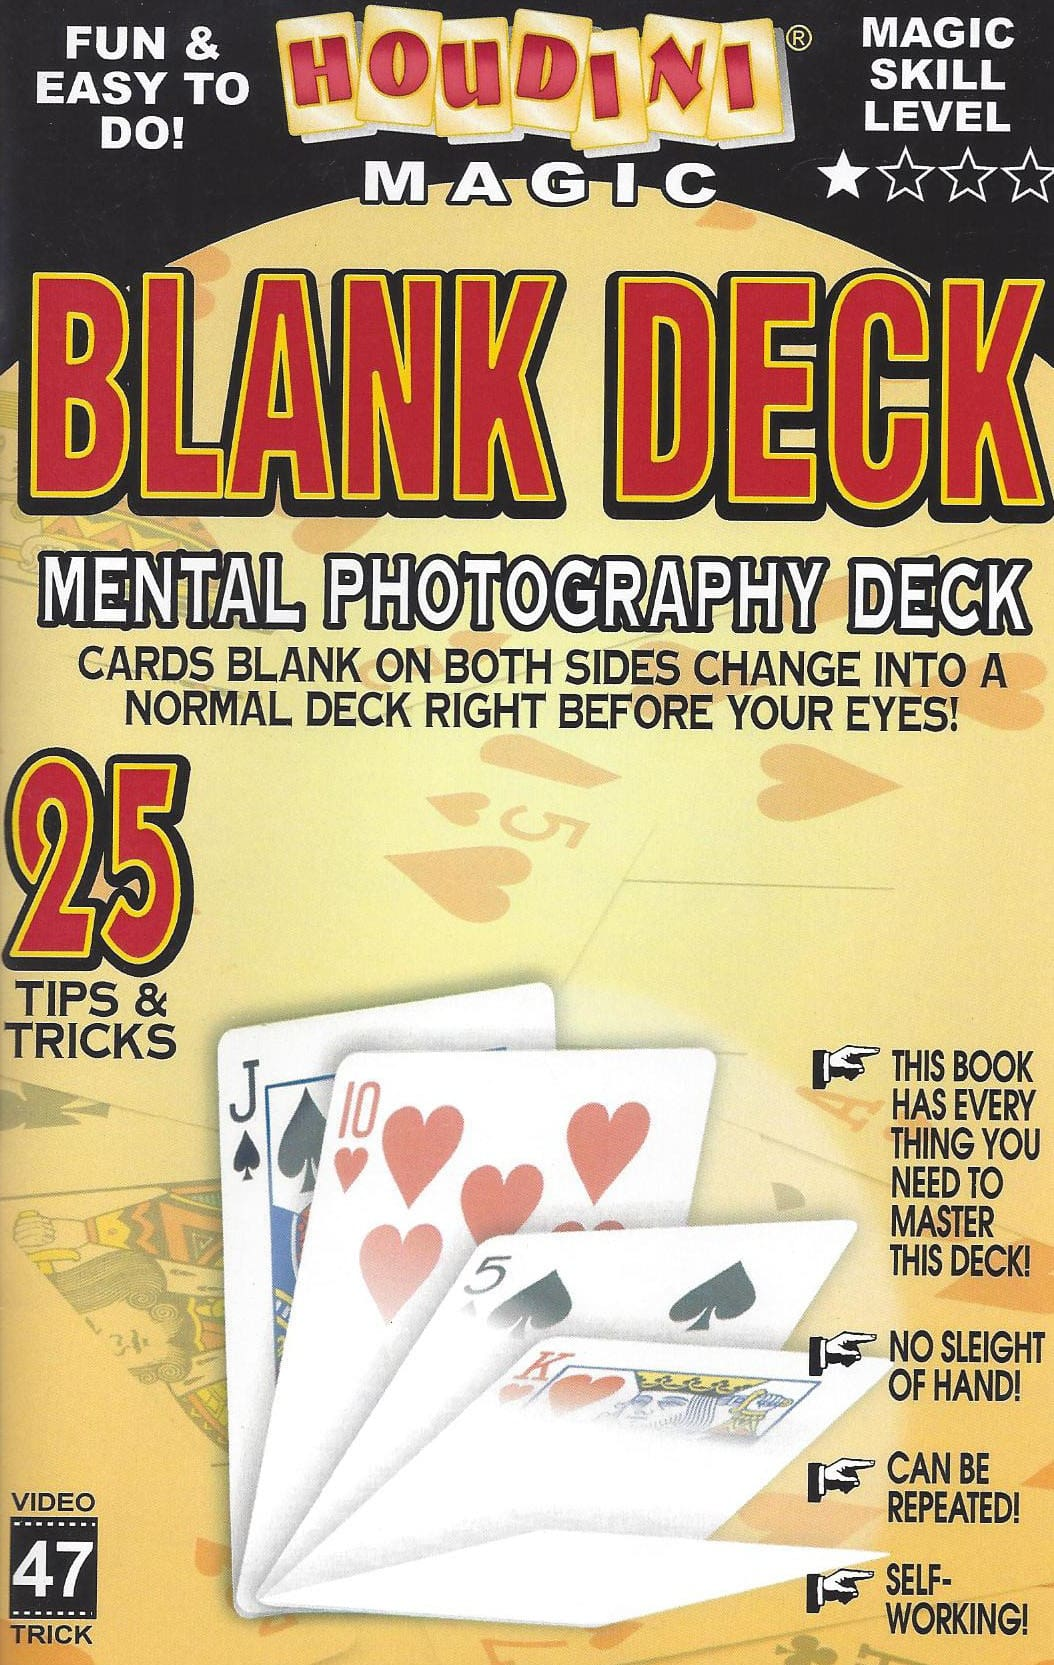 Blank Deck/ Mental Photography Deck